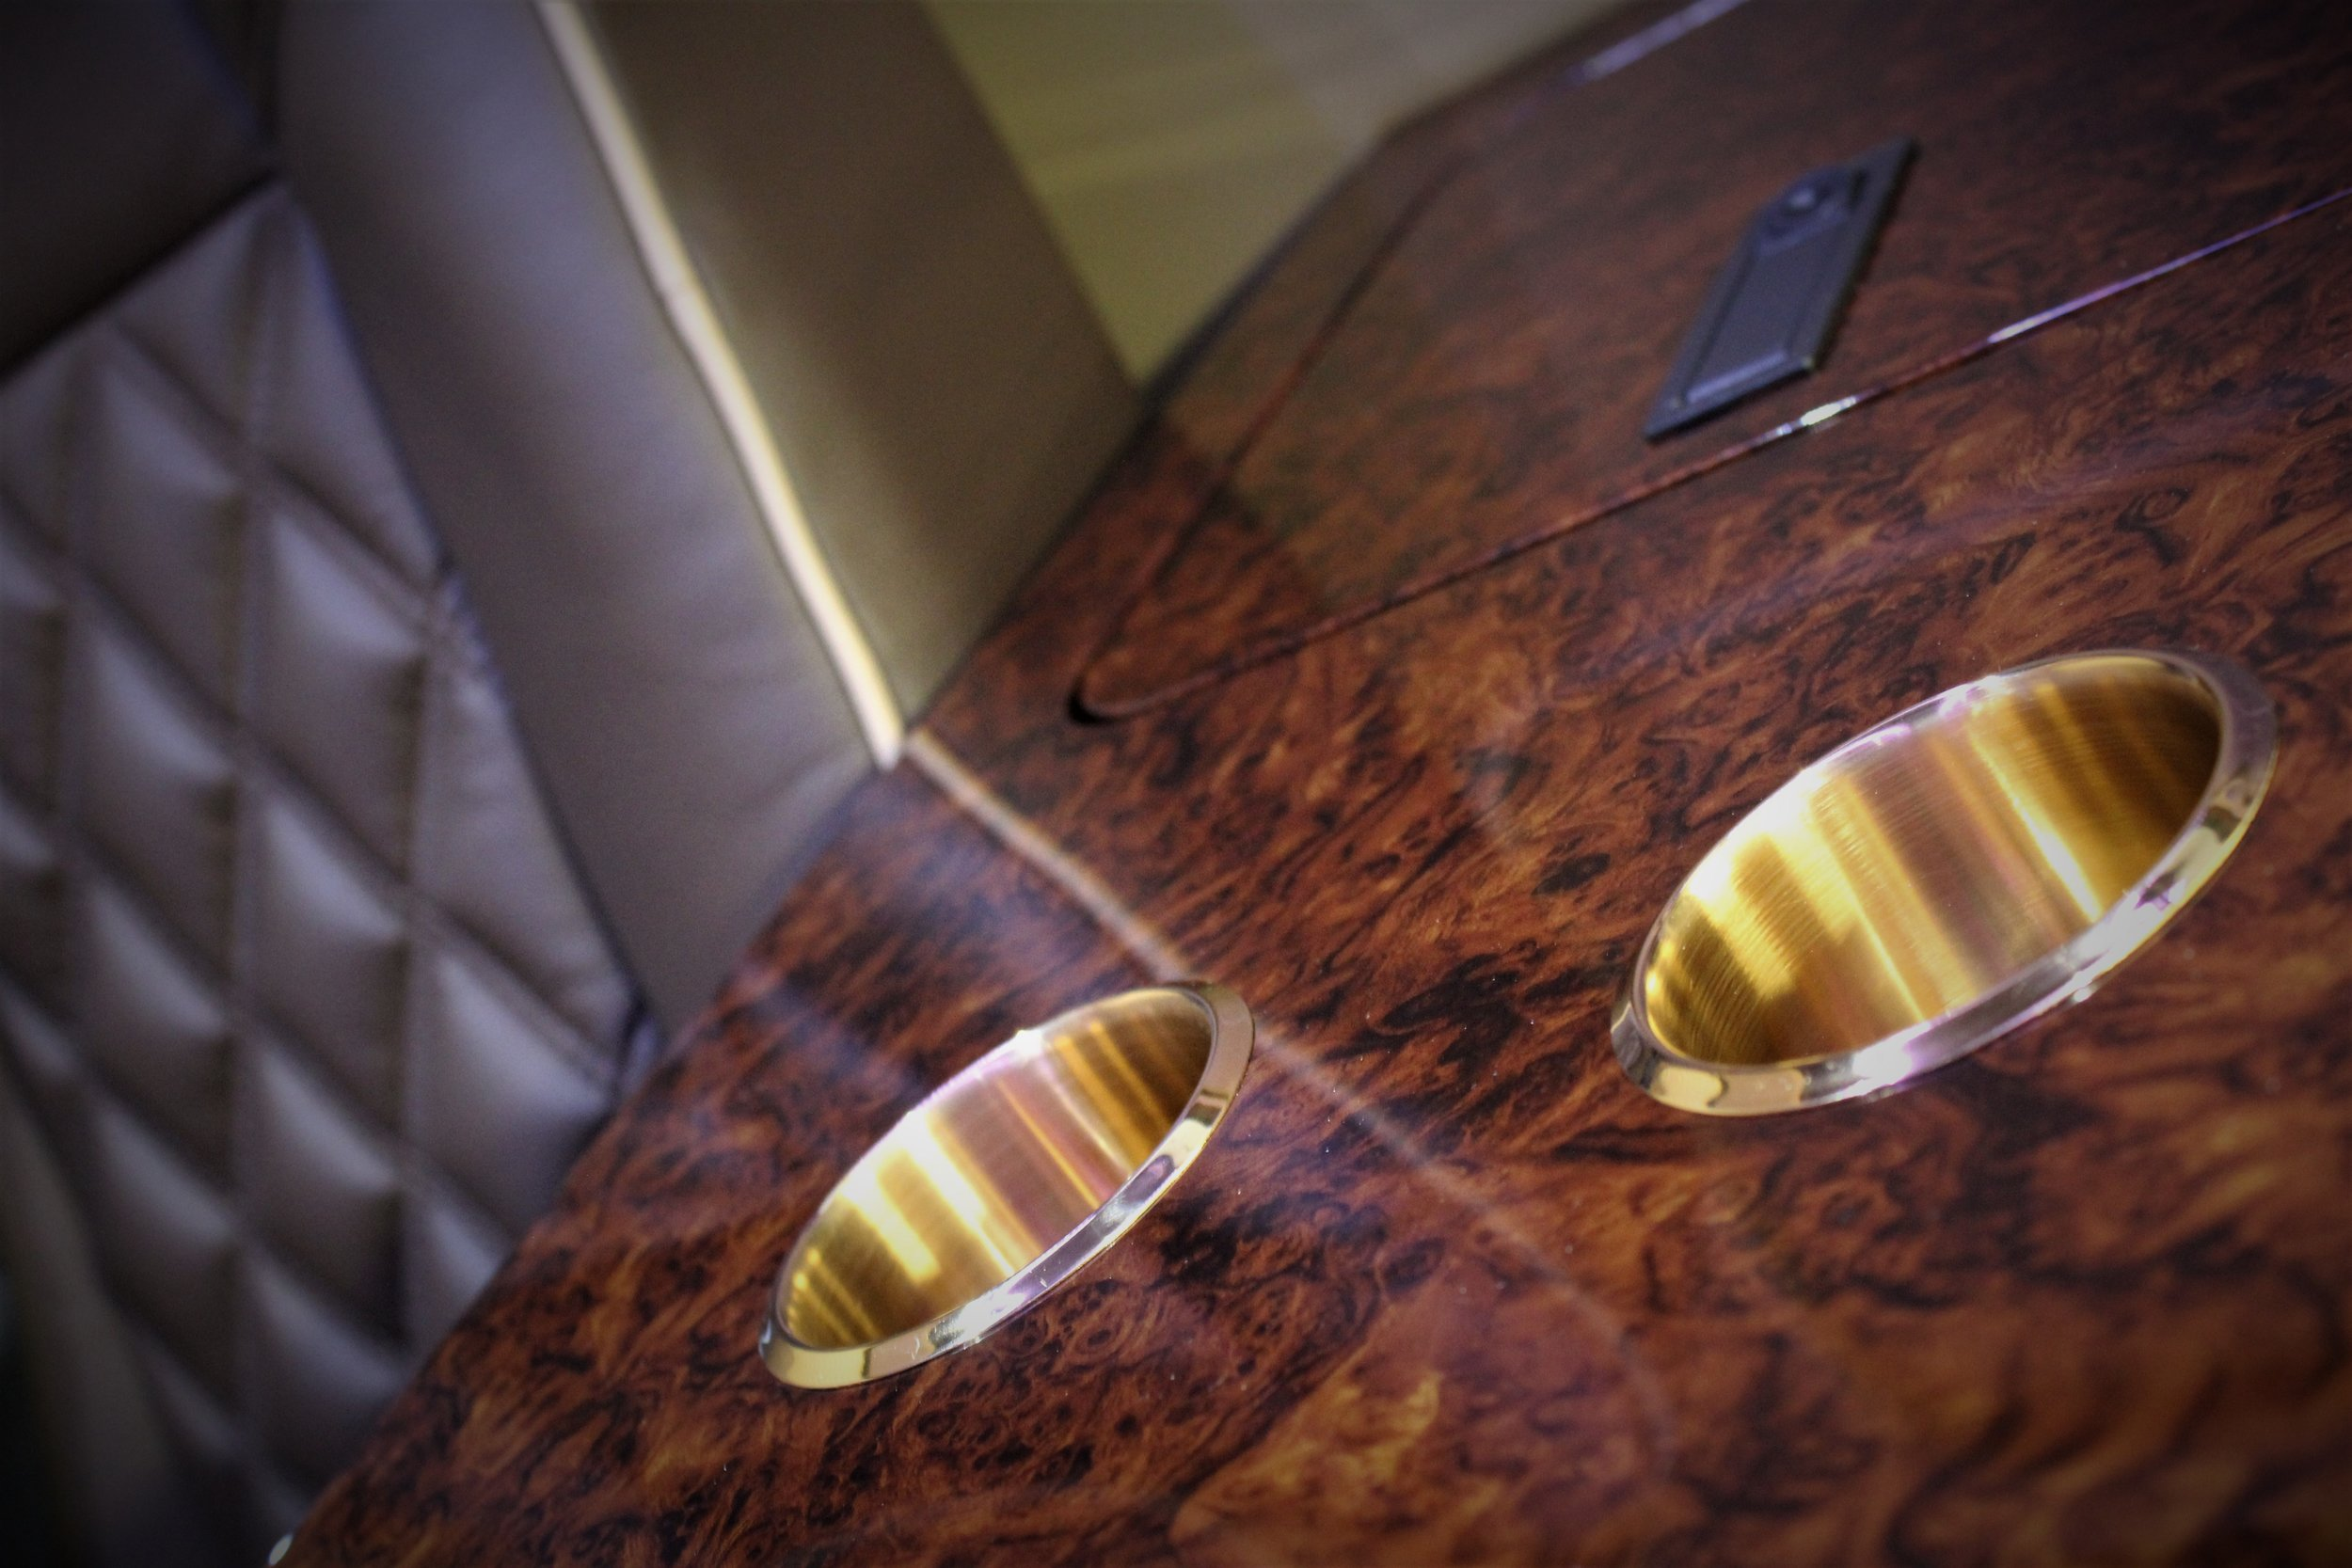 The Monaco even features 24 carrat gold plated cup holders